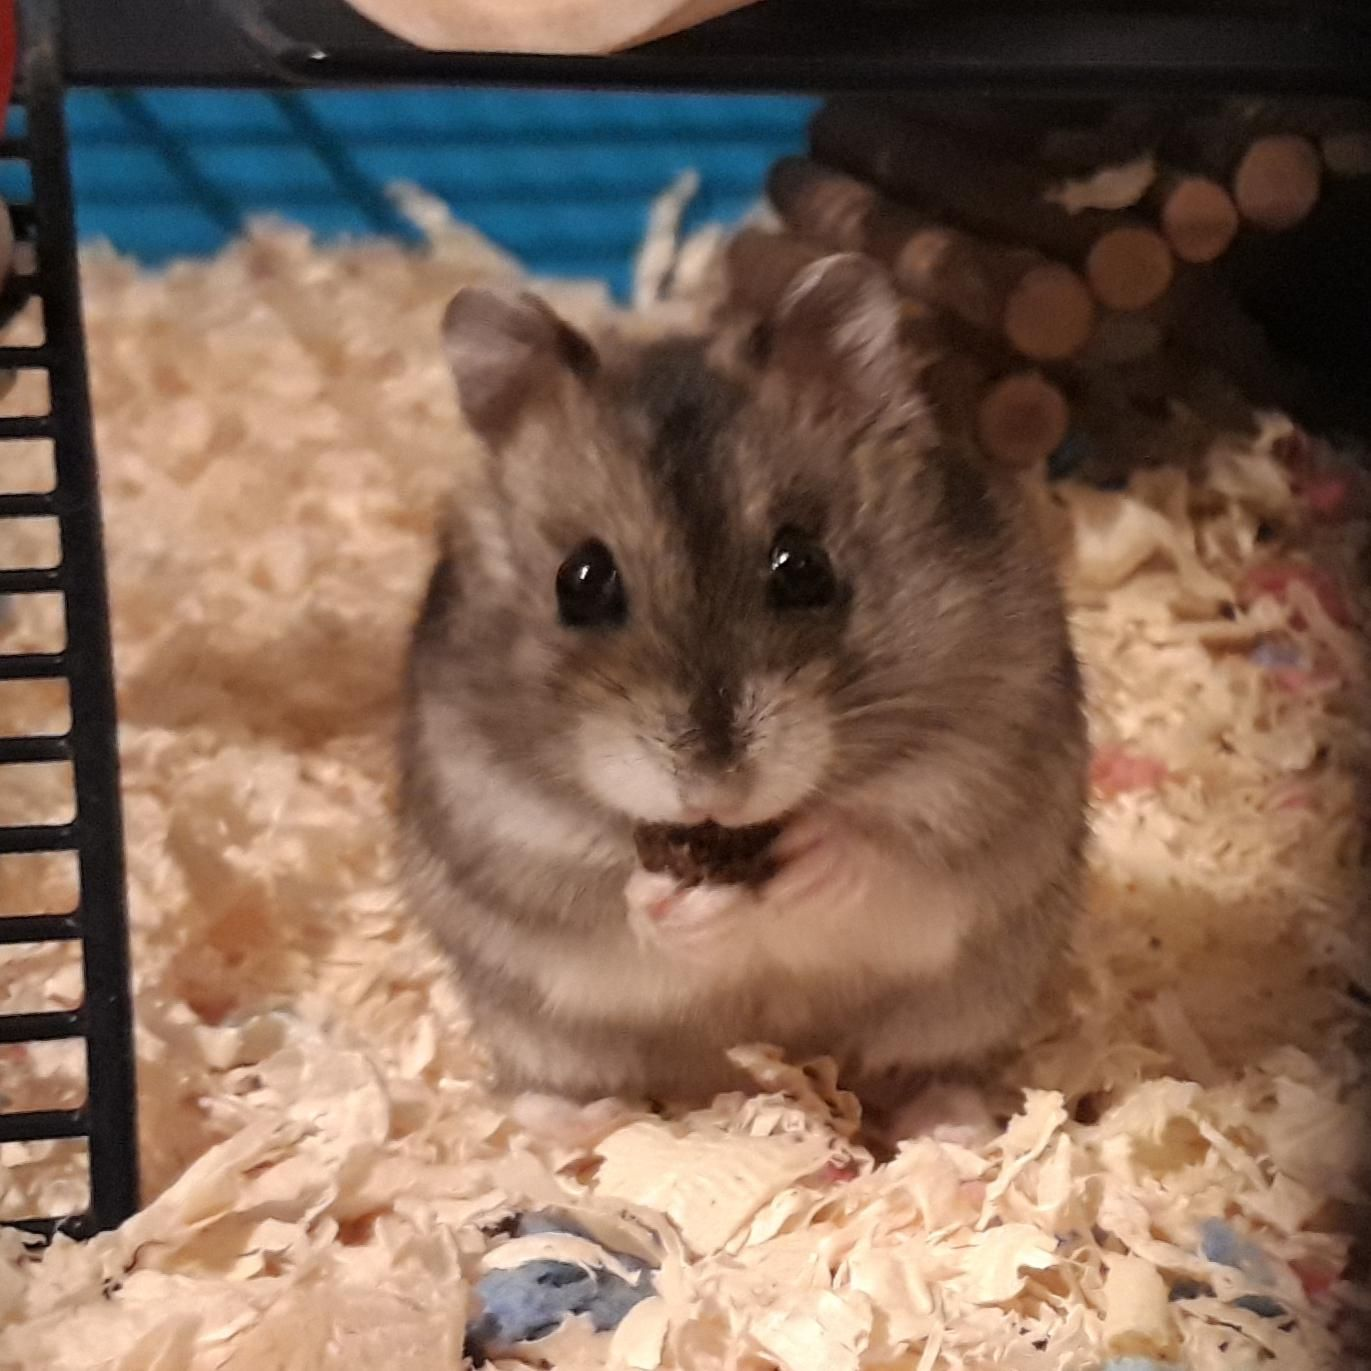 Pin By Meara Huheey On Cute Dwarf Hamster Hamster Funny Hamsters